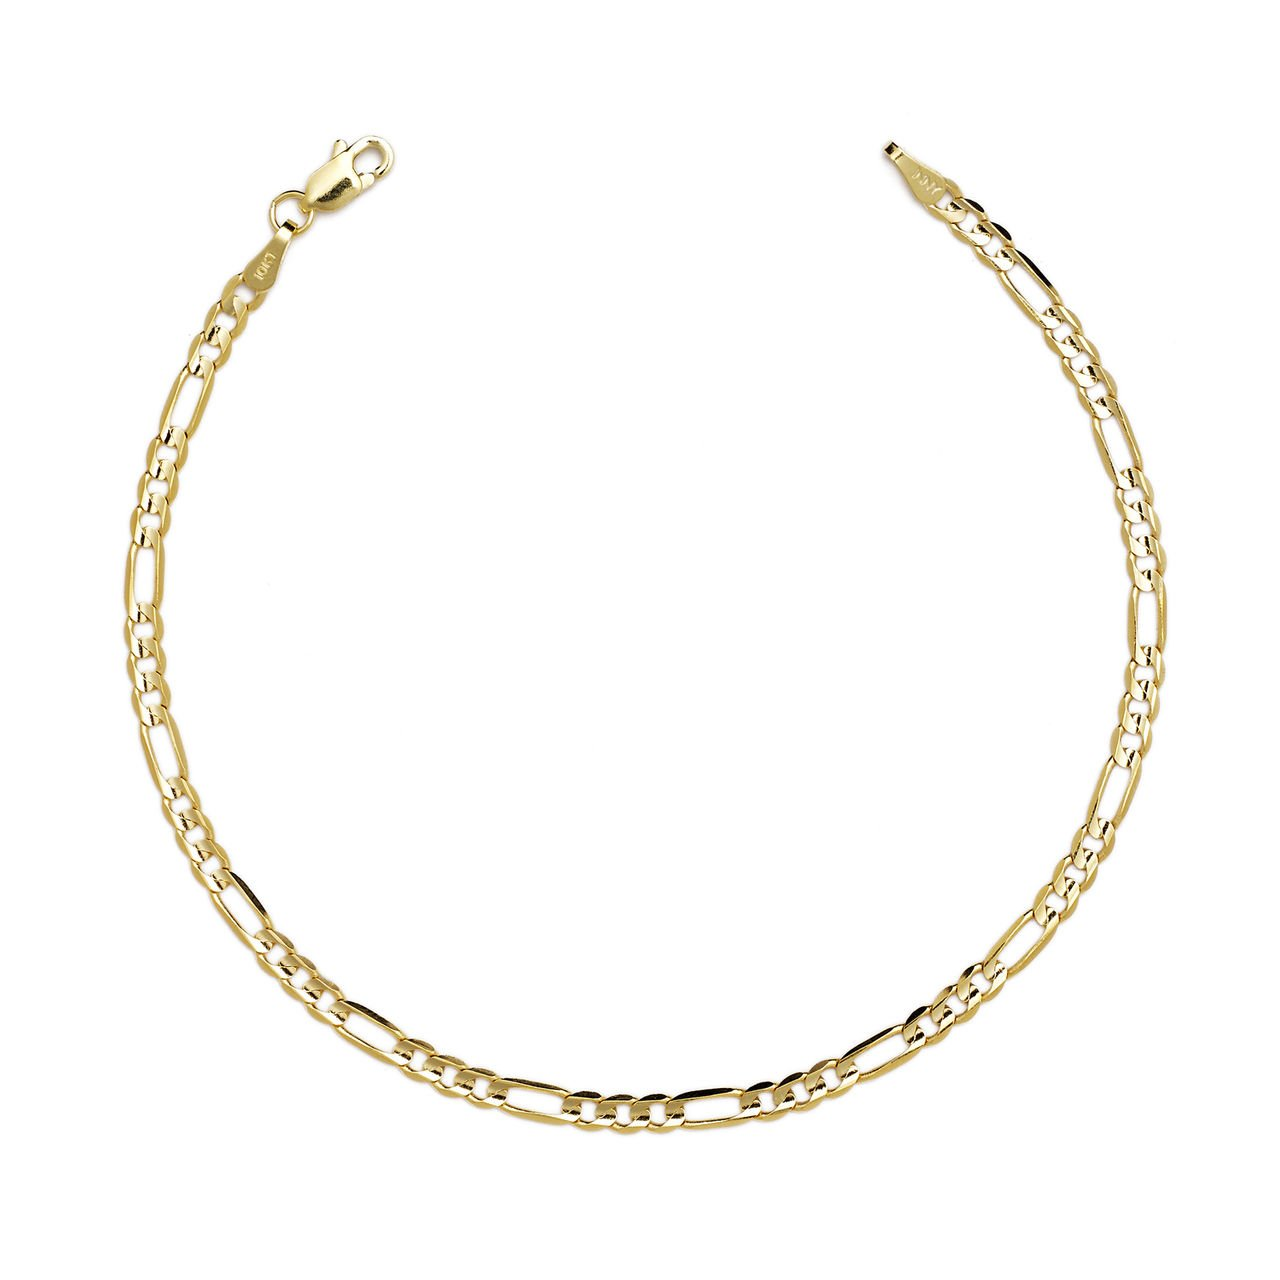 10 Inch 14k Yellow Gold Hollwo Figaro Chain Anklet, 0.13 Inch (3.2mm)